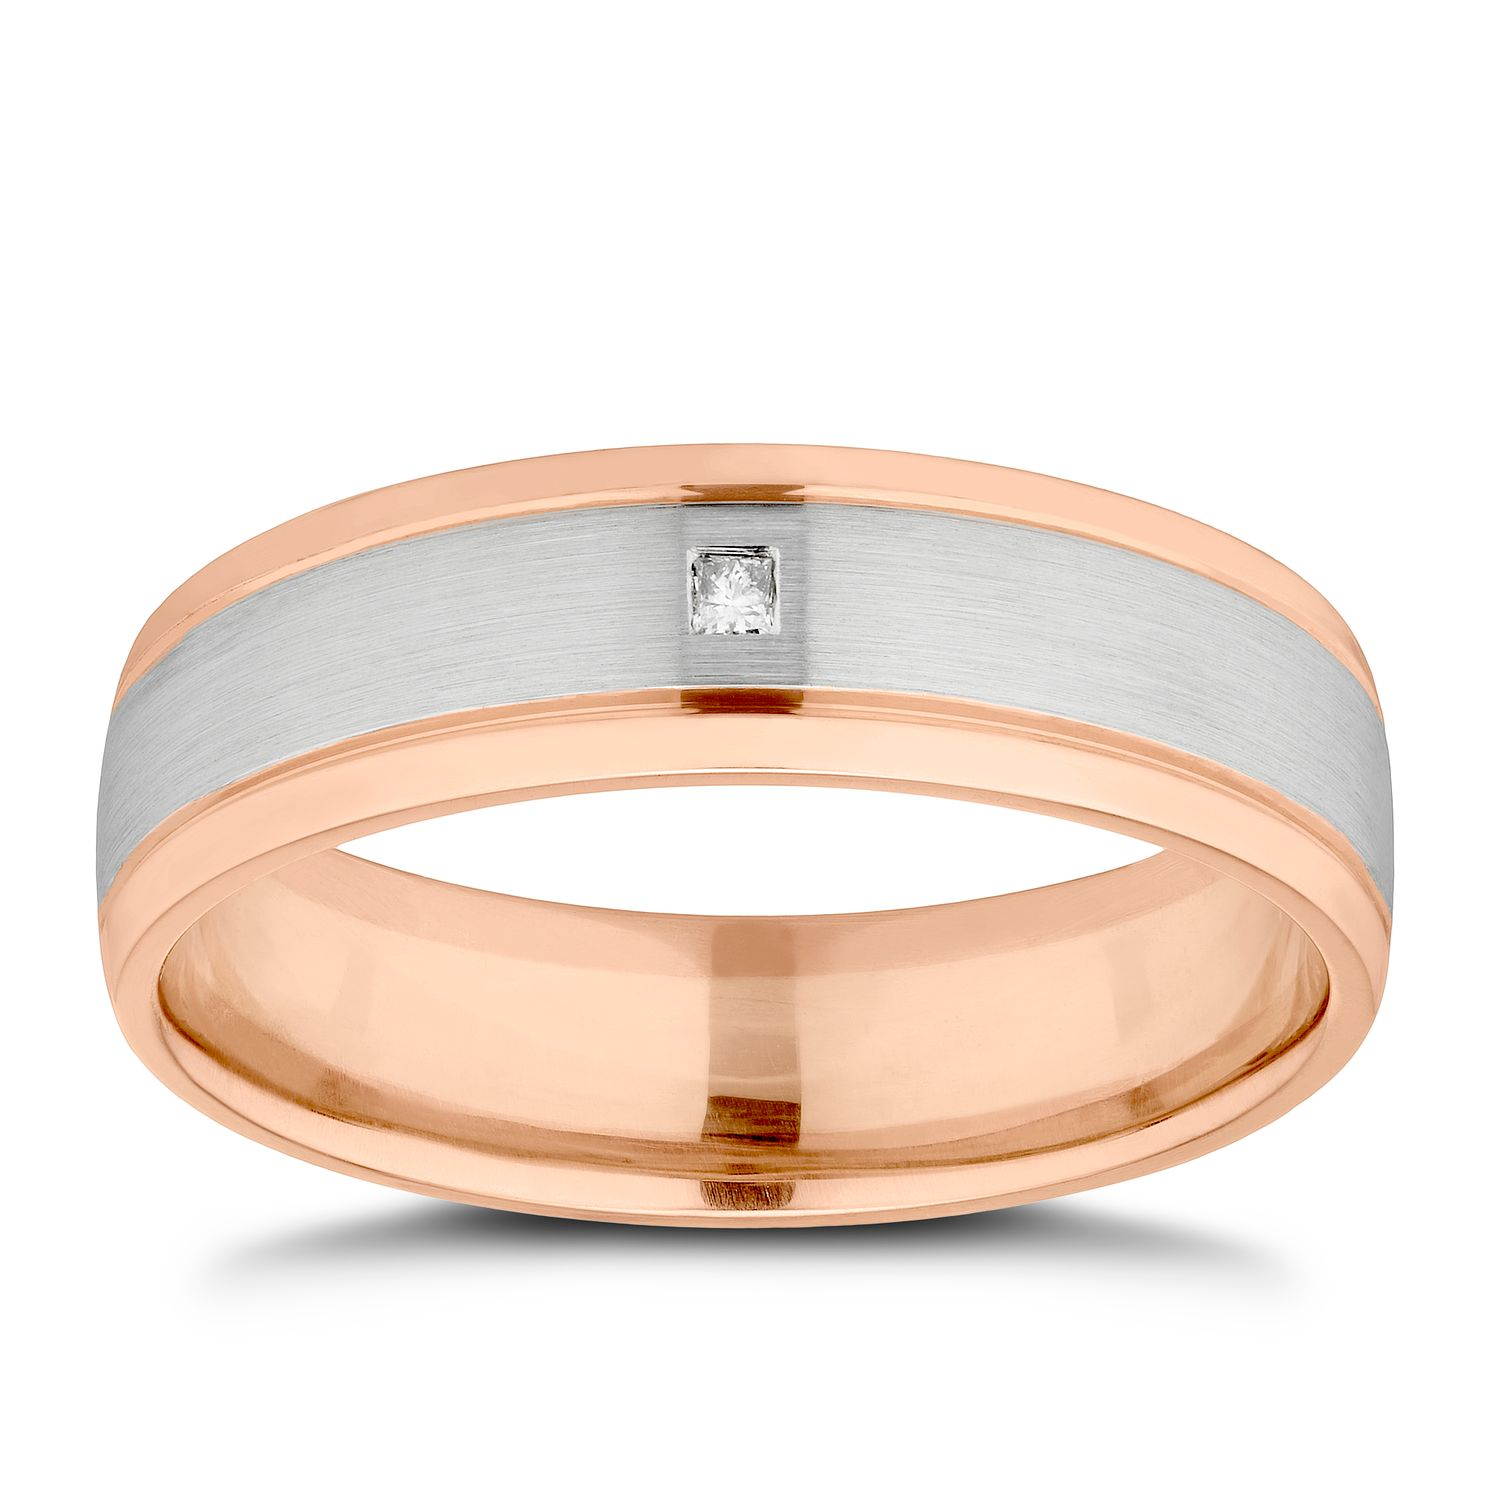 9ct White & Rose Gold Diamond Set 6mm Wedding Ring - Product number 4018087